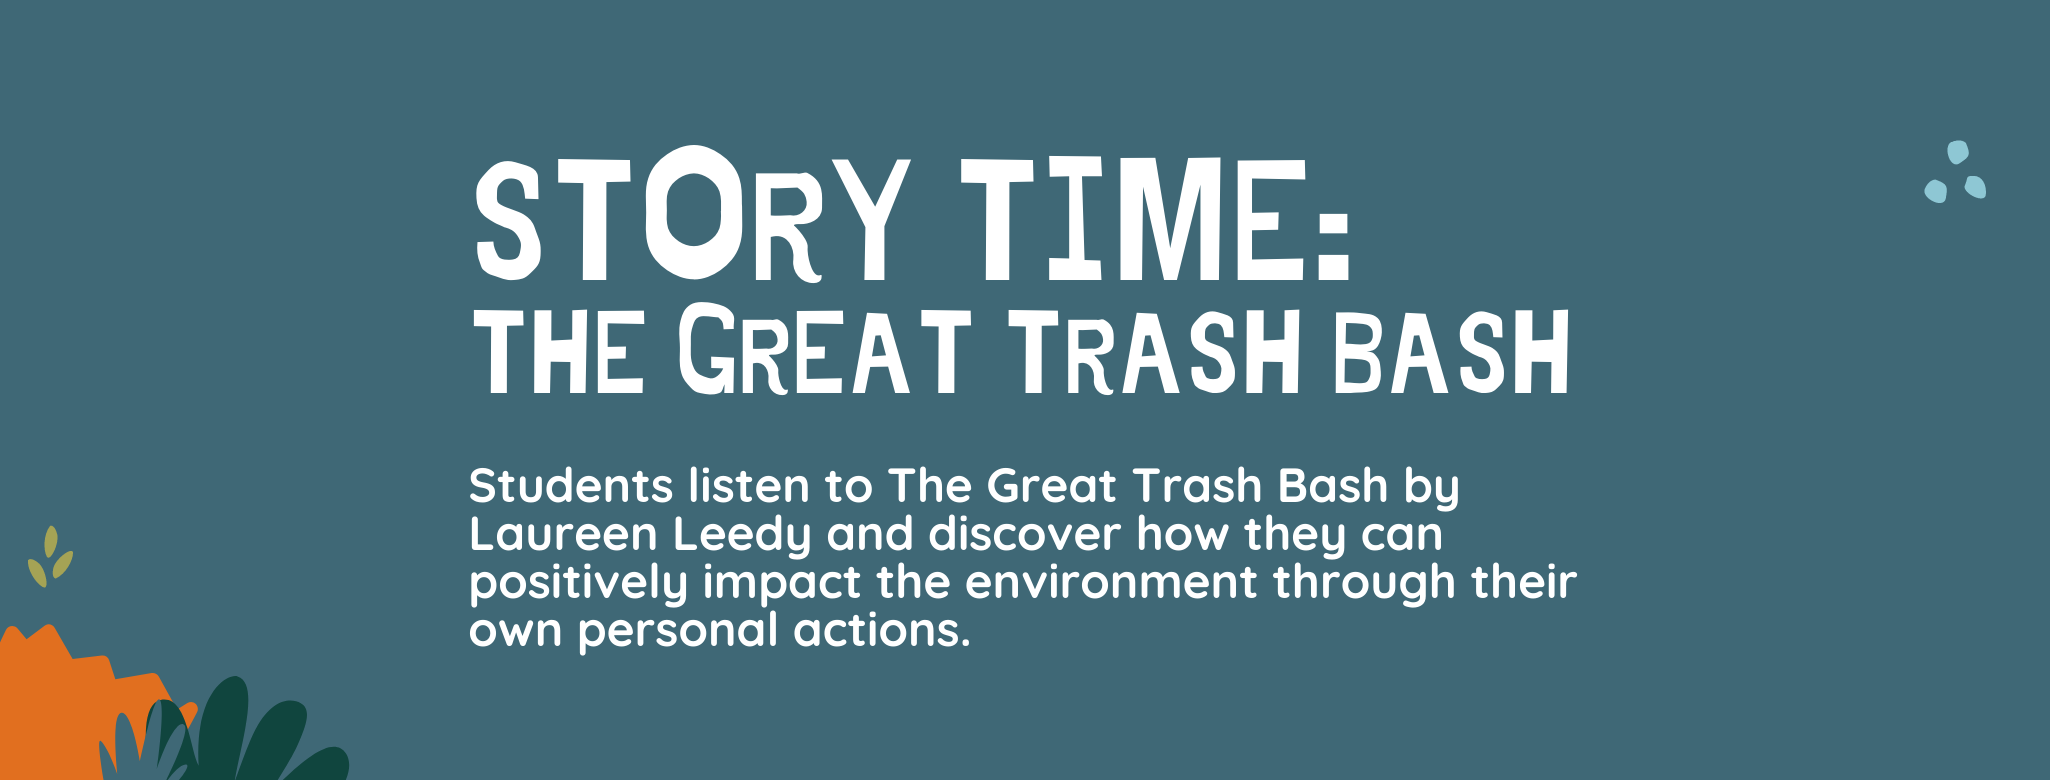 Story Time: The Great Trash Bash